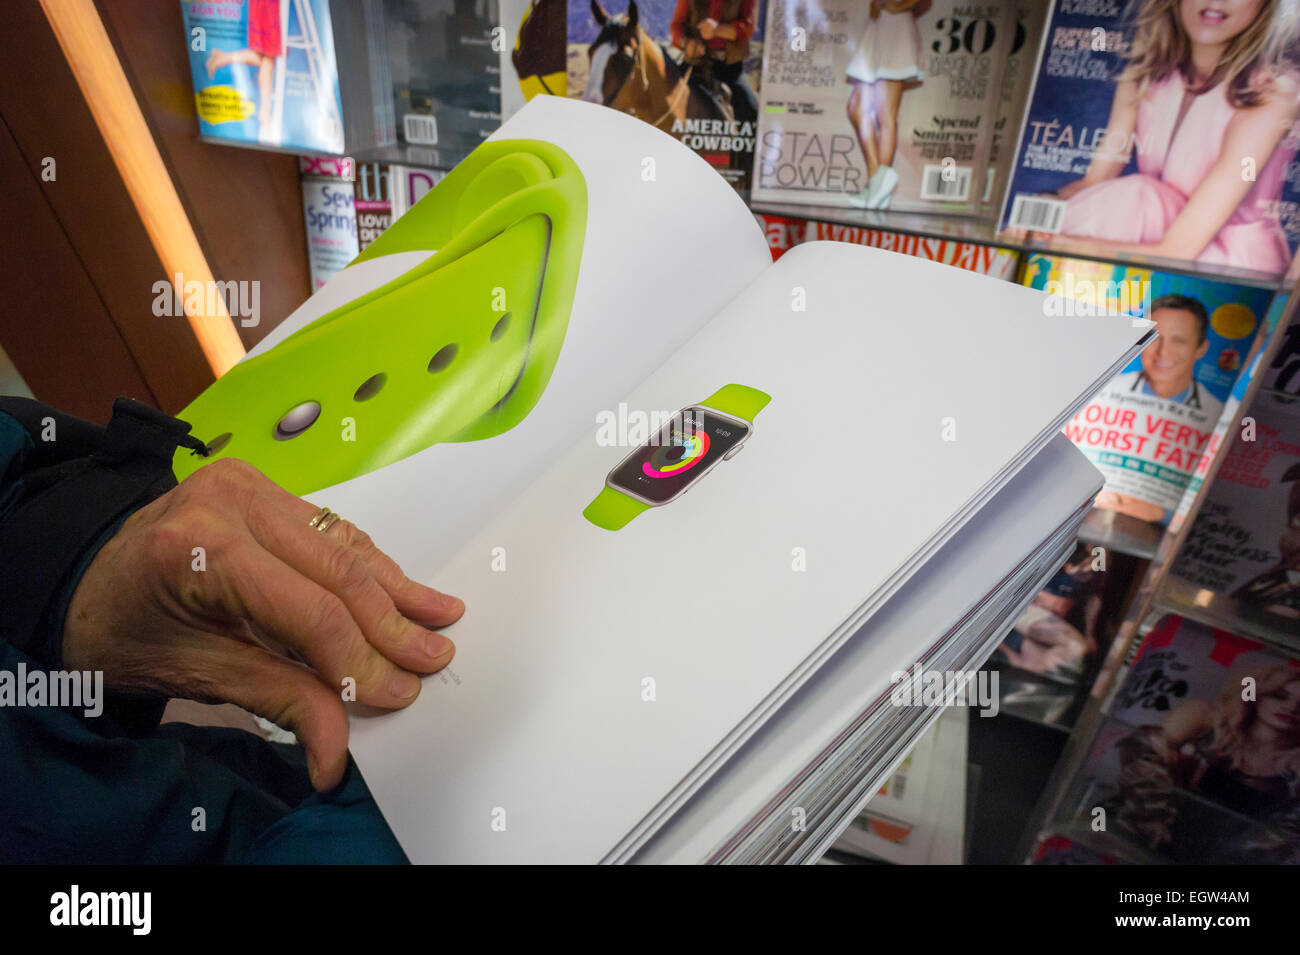 A shopper reviews a 12 page advertisement for the Apple Watch in the March issue of Vogue magazine at a newsstand - Stock Image